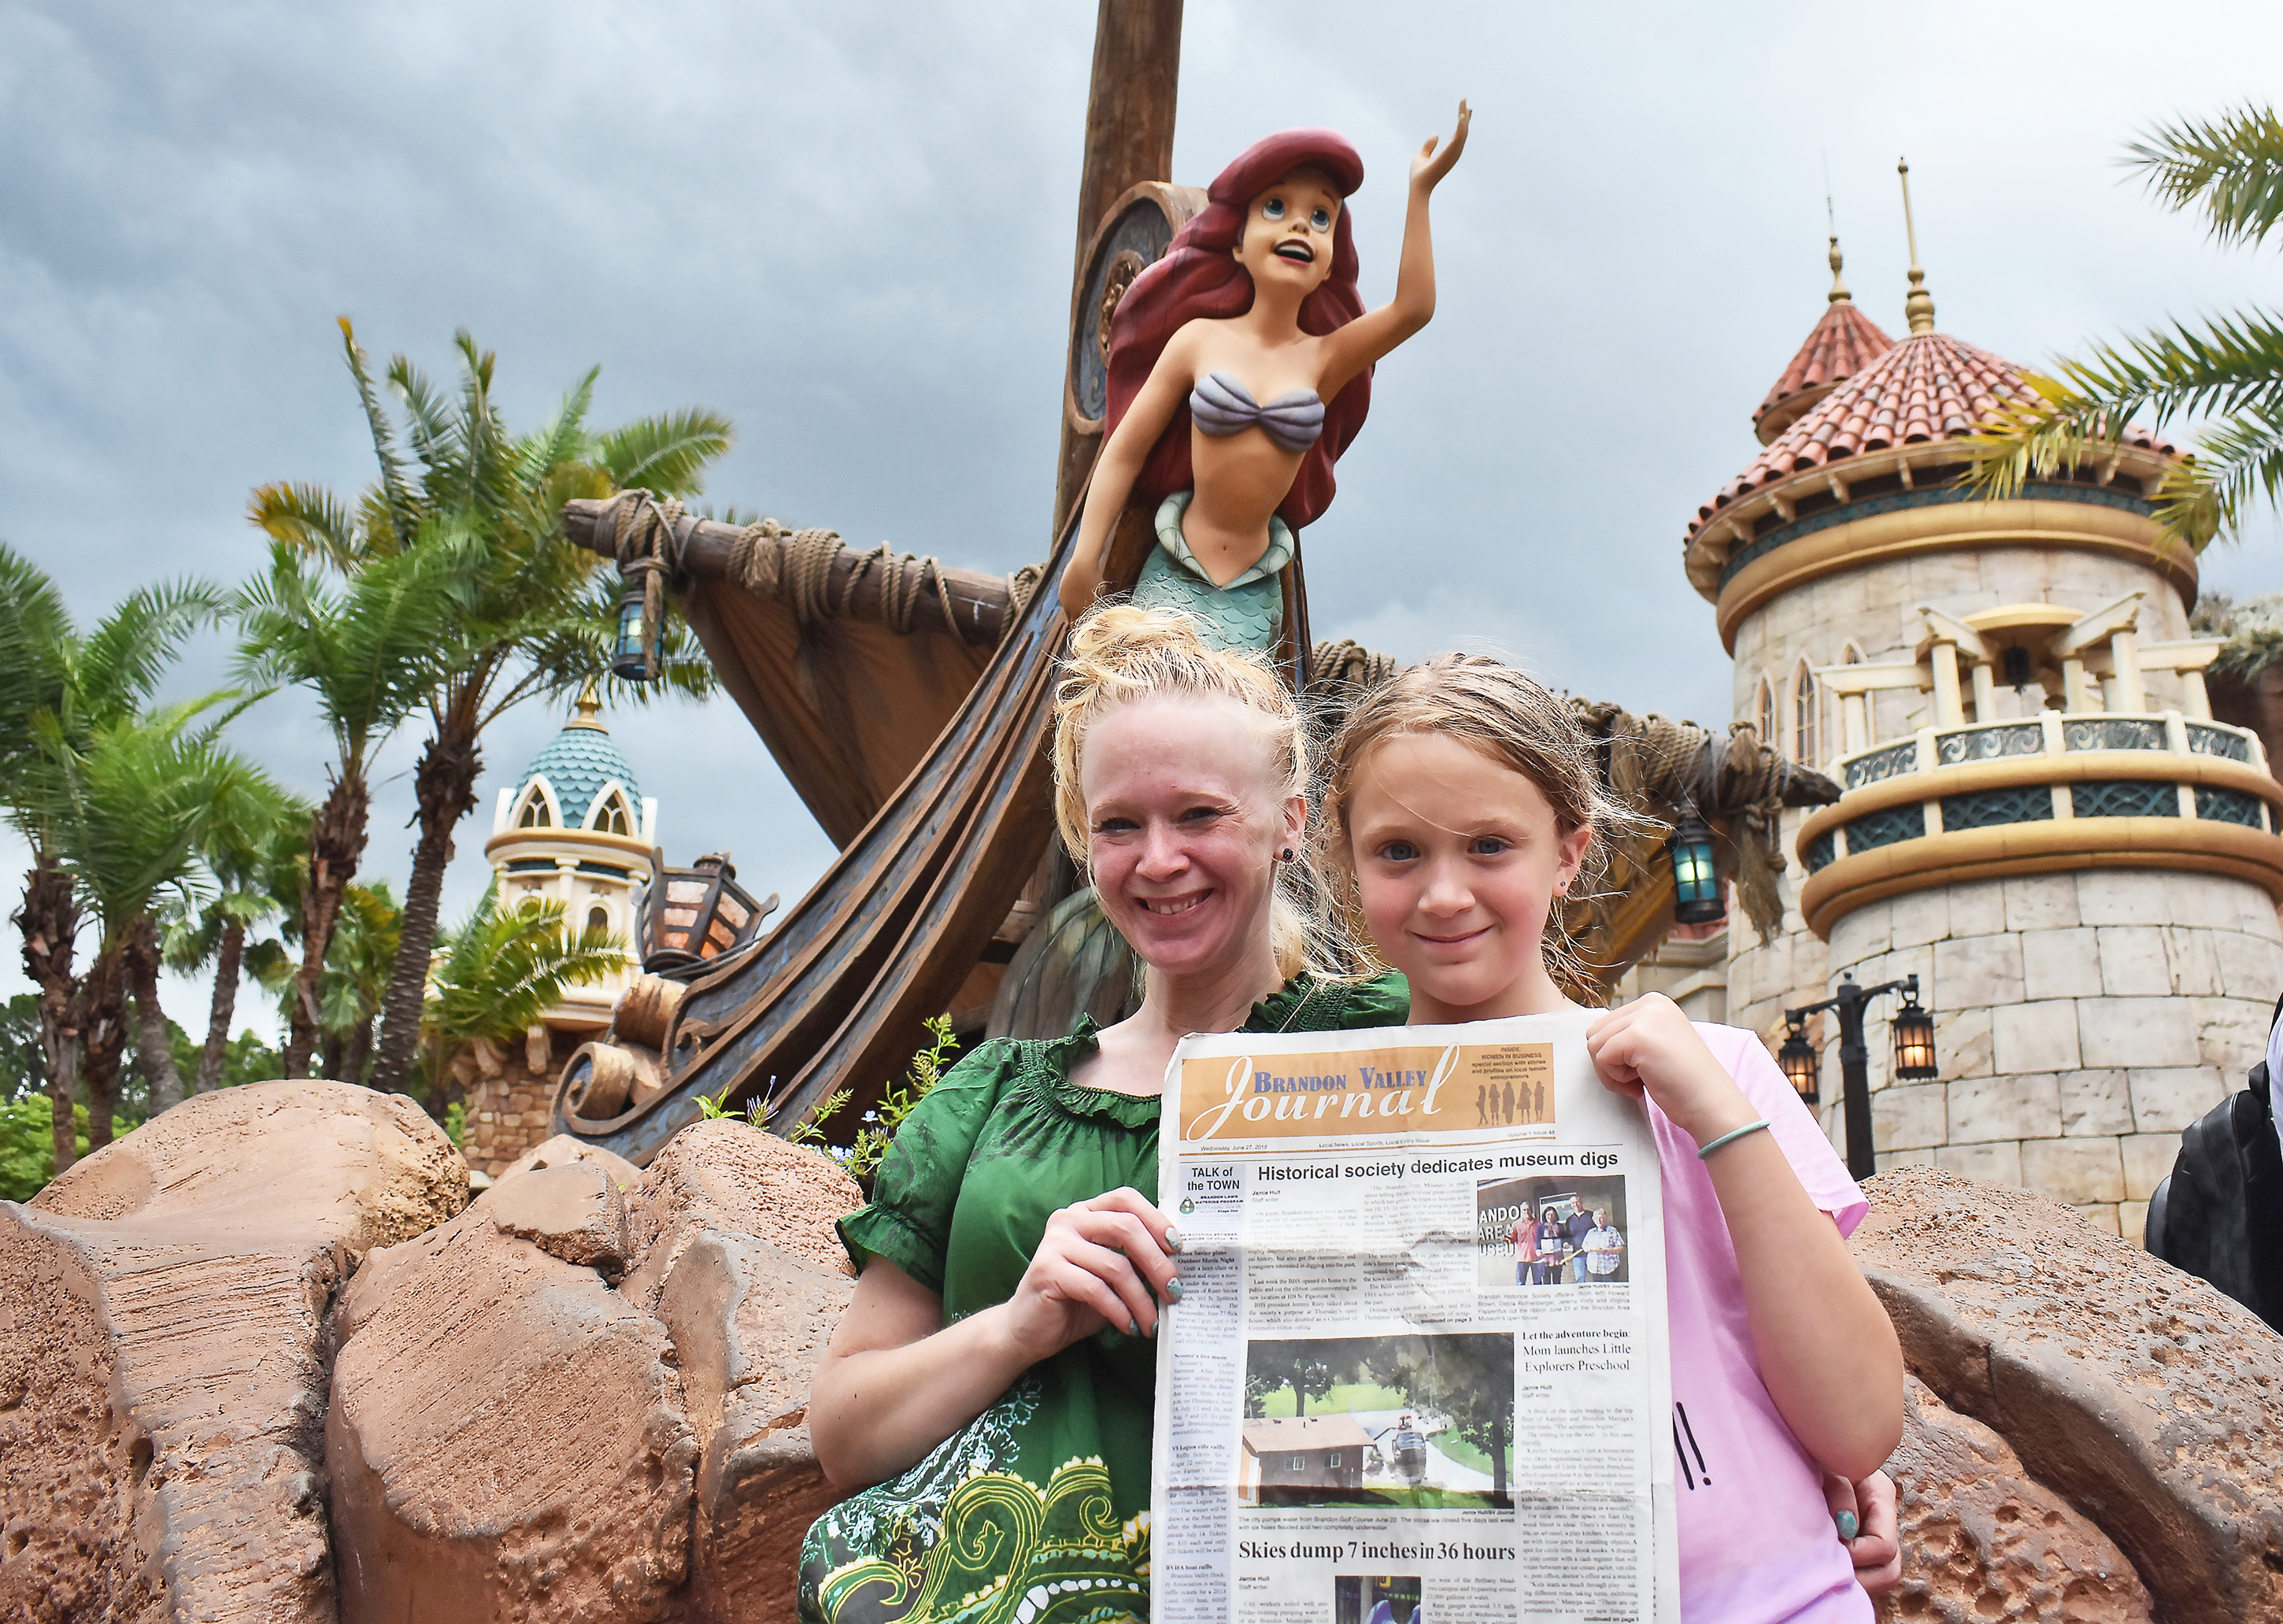 "<span style=""font-size:10px;""><i>Brandon Valley Journal </i>staffer Jamie Hult and her daughter, Greta, journey under the sea<span class=""Apple-converted-space""> </span>with Ariel at Disney World last week with a copy<span class=""Apple-converted-space""> </span>of the <i>Journal</i>. <strong>Submitted photo.</strong></span>*/"